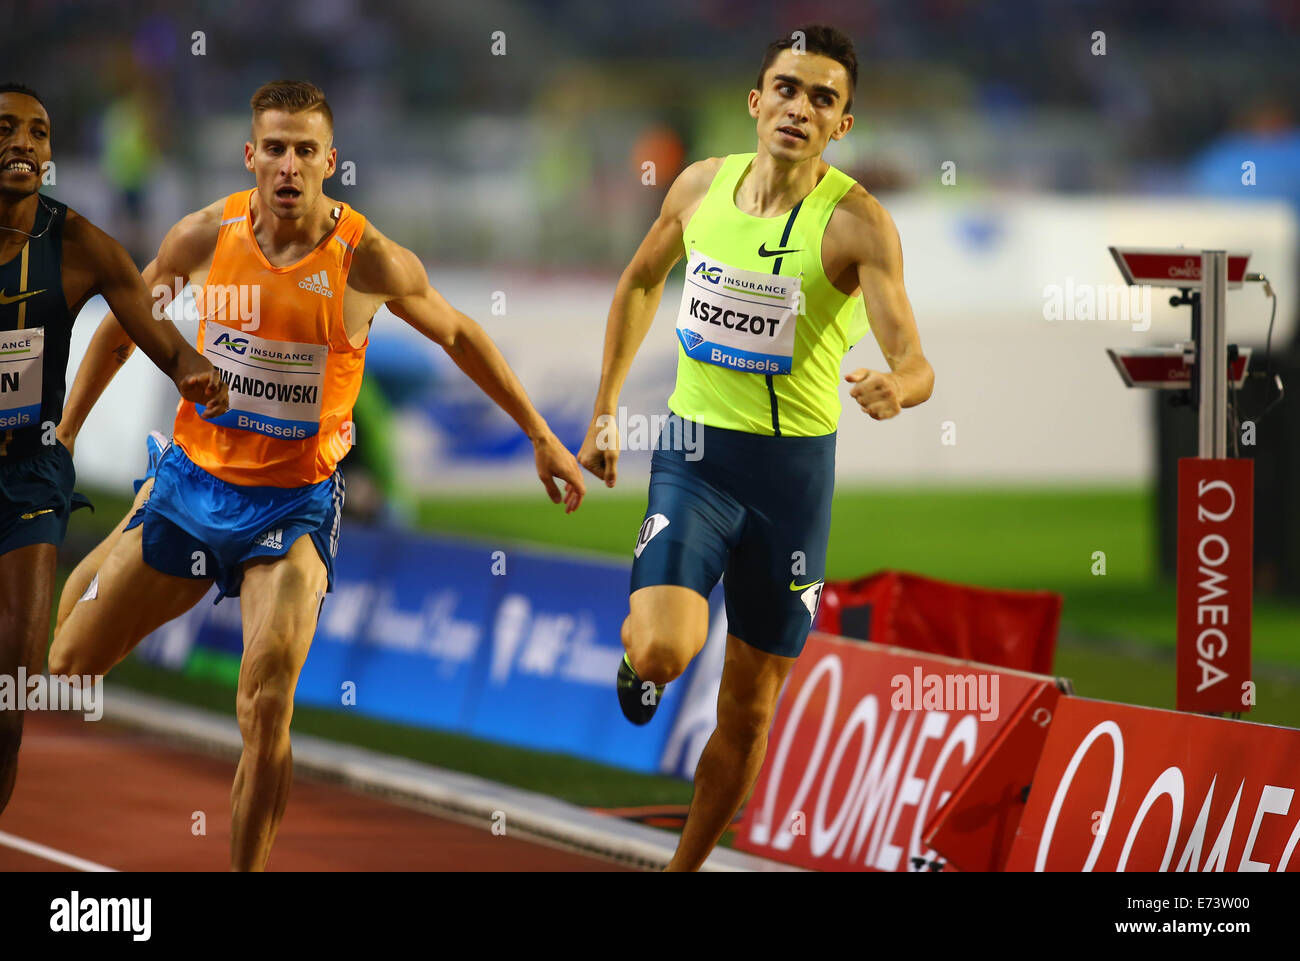 Brussels, Belgium. 5th Sep, 2014. Adam Kszczot (R) from Poland wins the Men's 1000m race at the Memorial Van - Stock Image